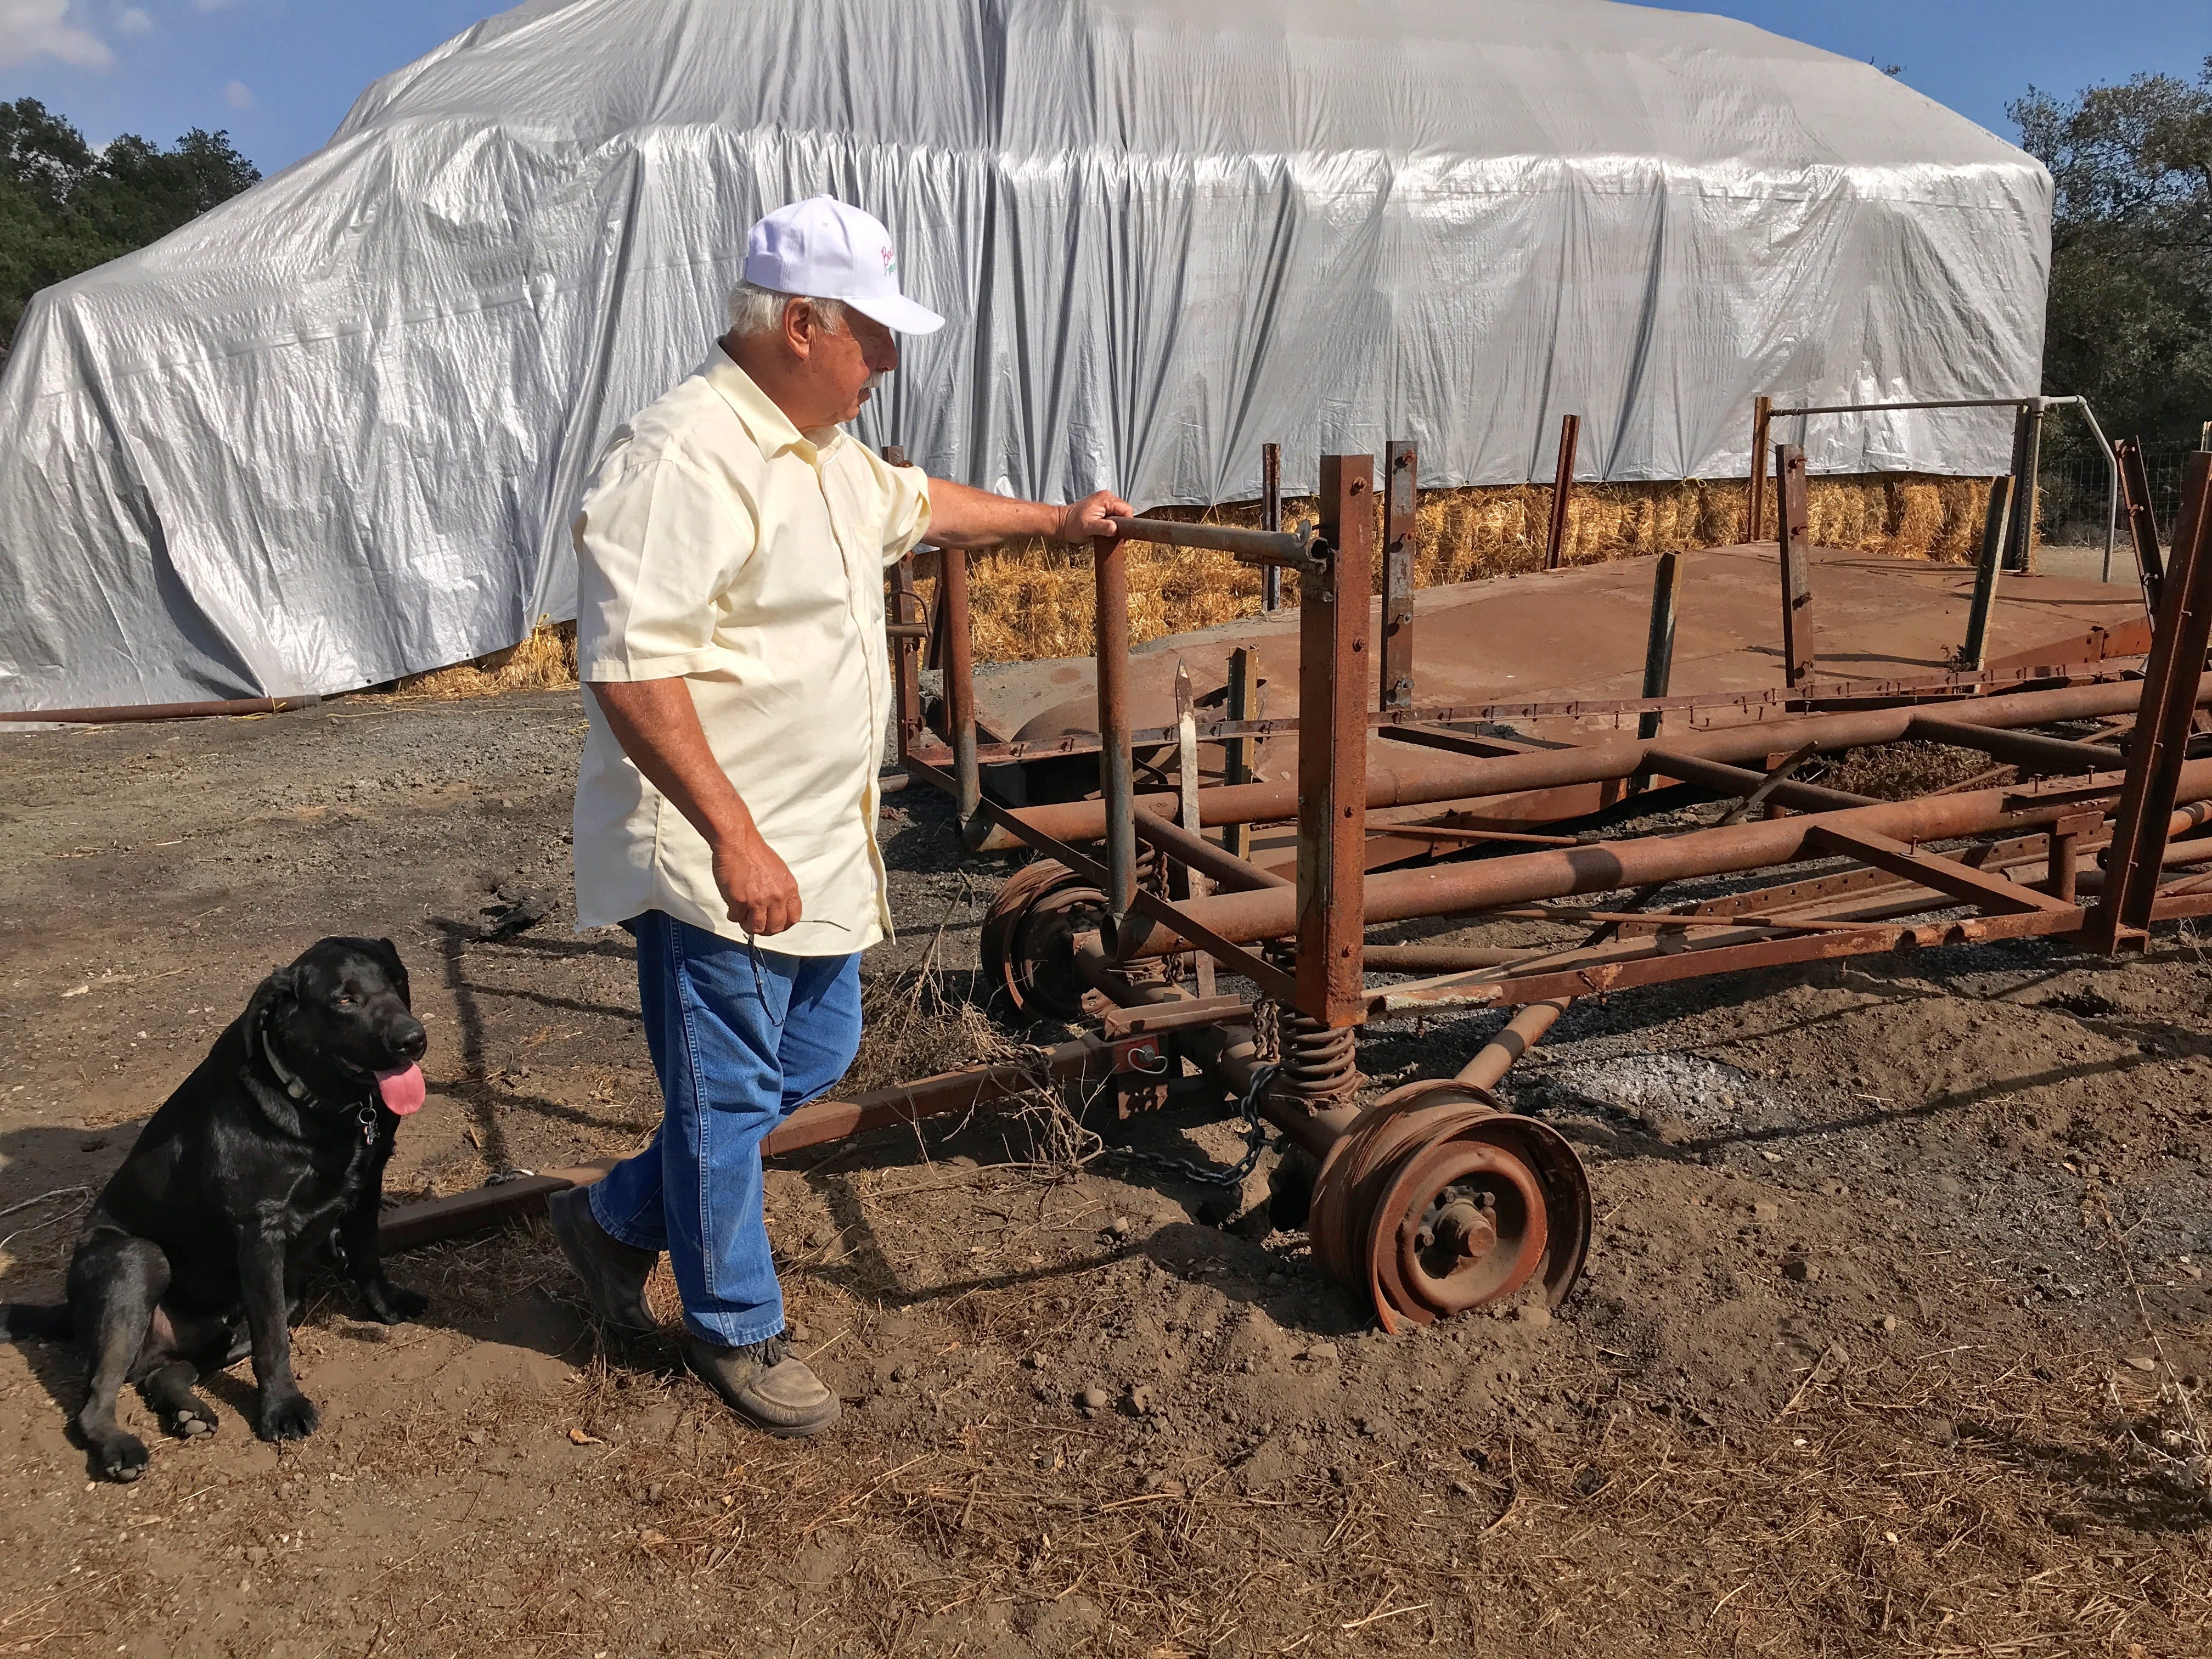 DeWayne Boccali and his dog Buster stand by the remains of two trailers used for the annual haunted hayride. The trailers burned in the Thomas Fire.